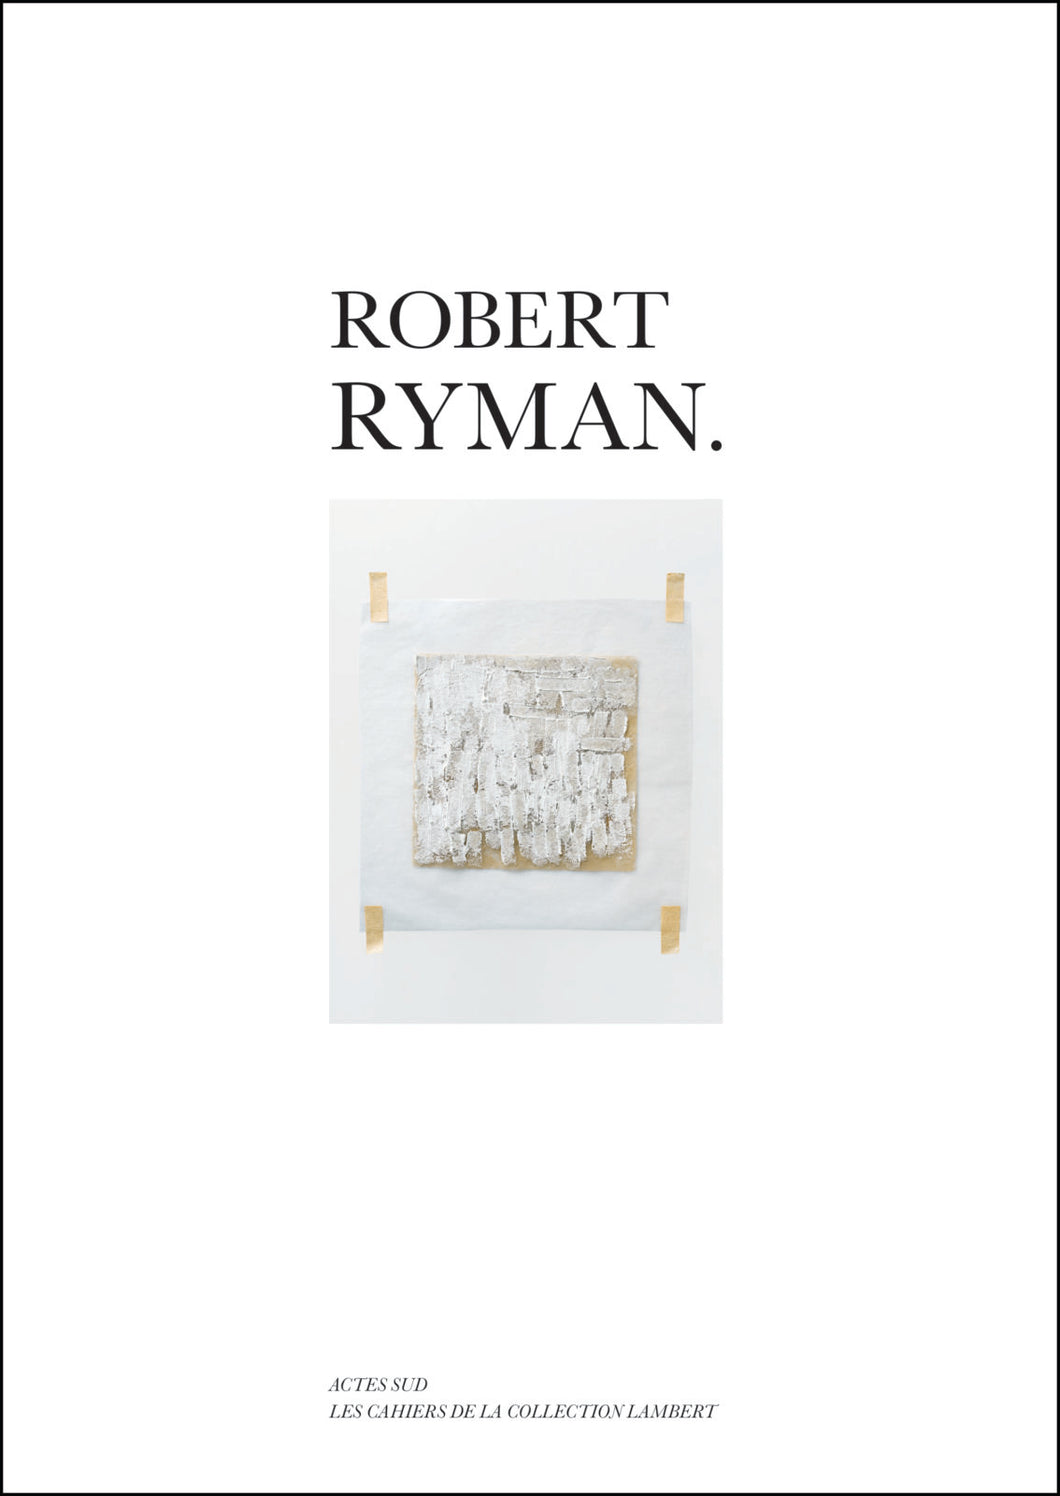 Robert Ryman (Les Cahiers de la Collection Lambert)